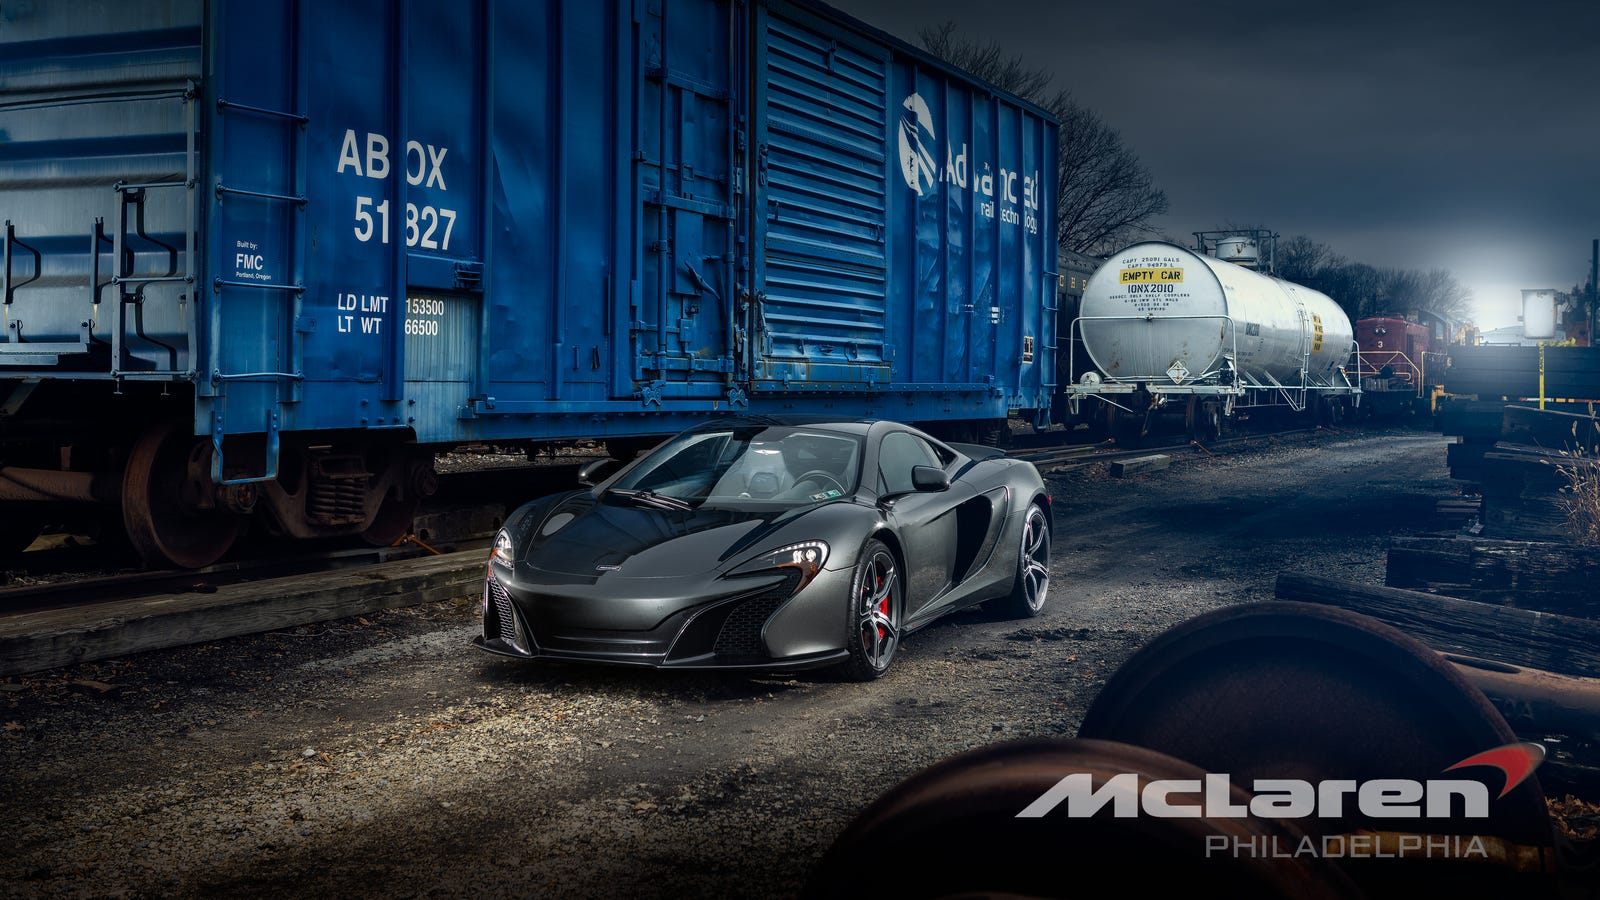 Your Ridiculously Awesome Mclaren 650s Wallpaper Is Here